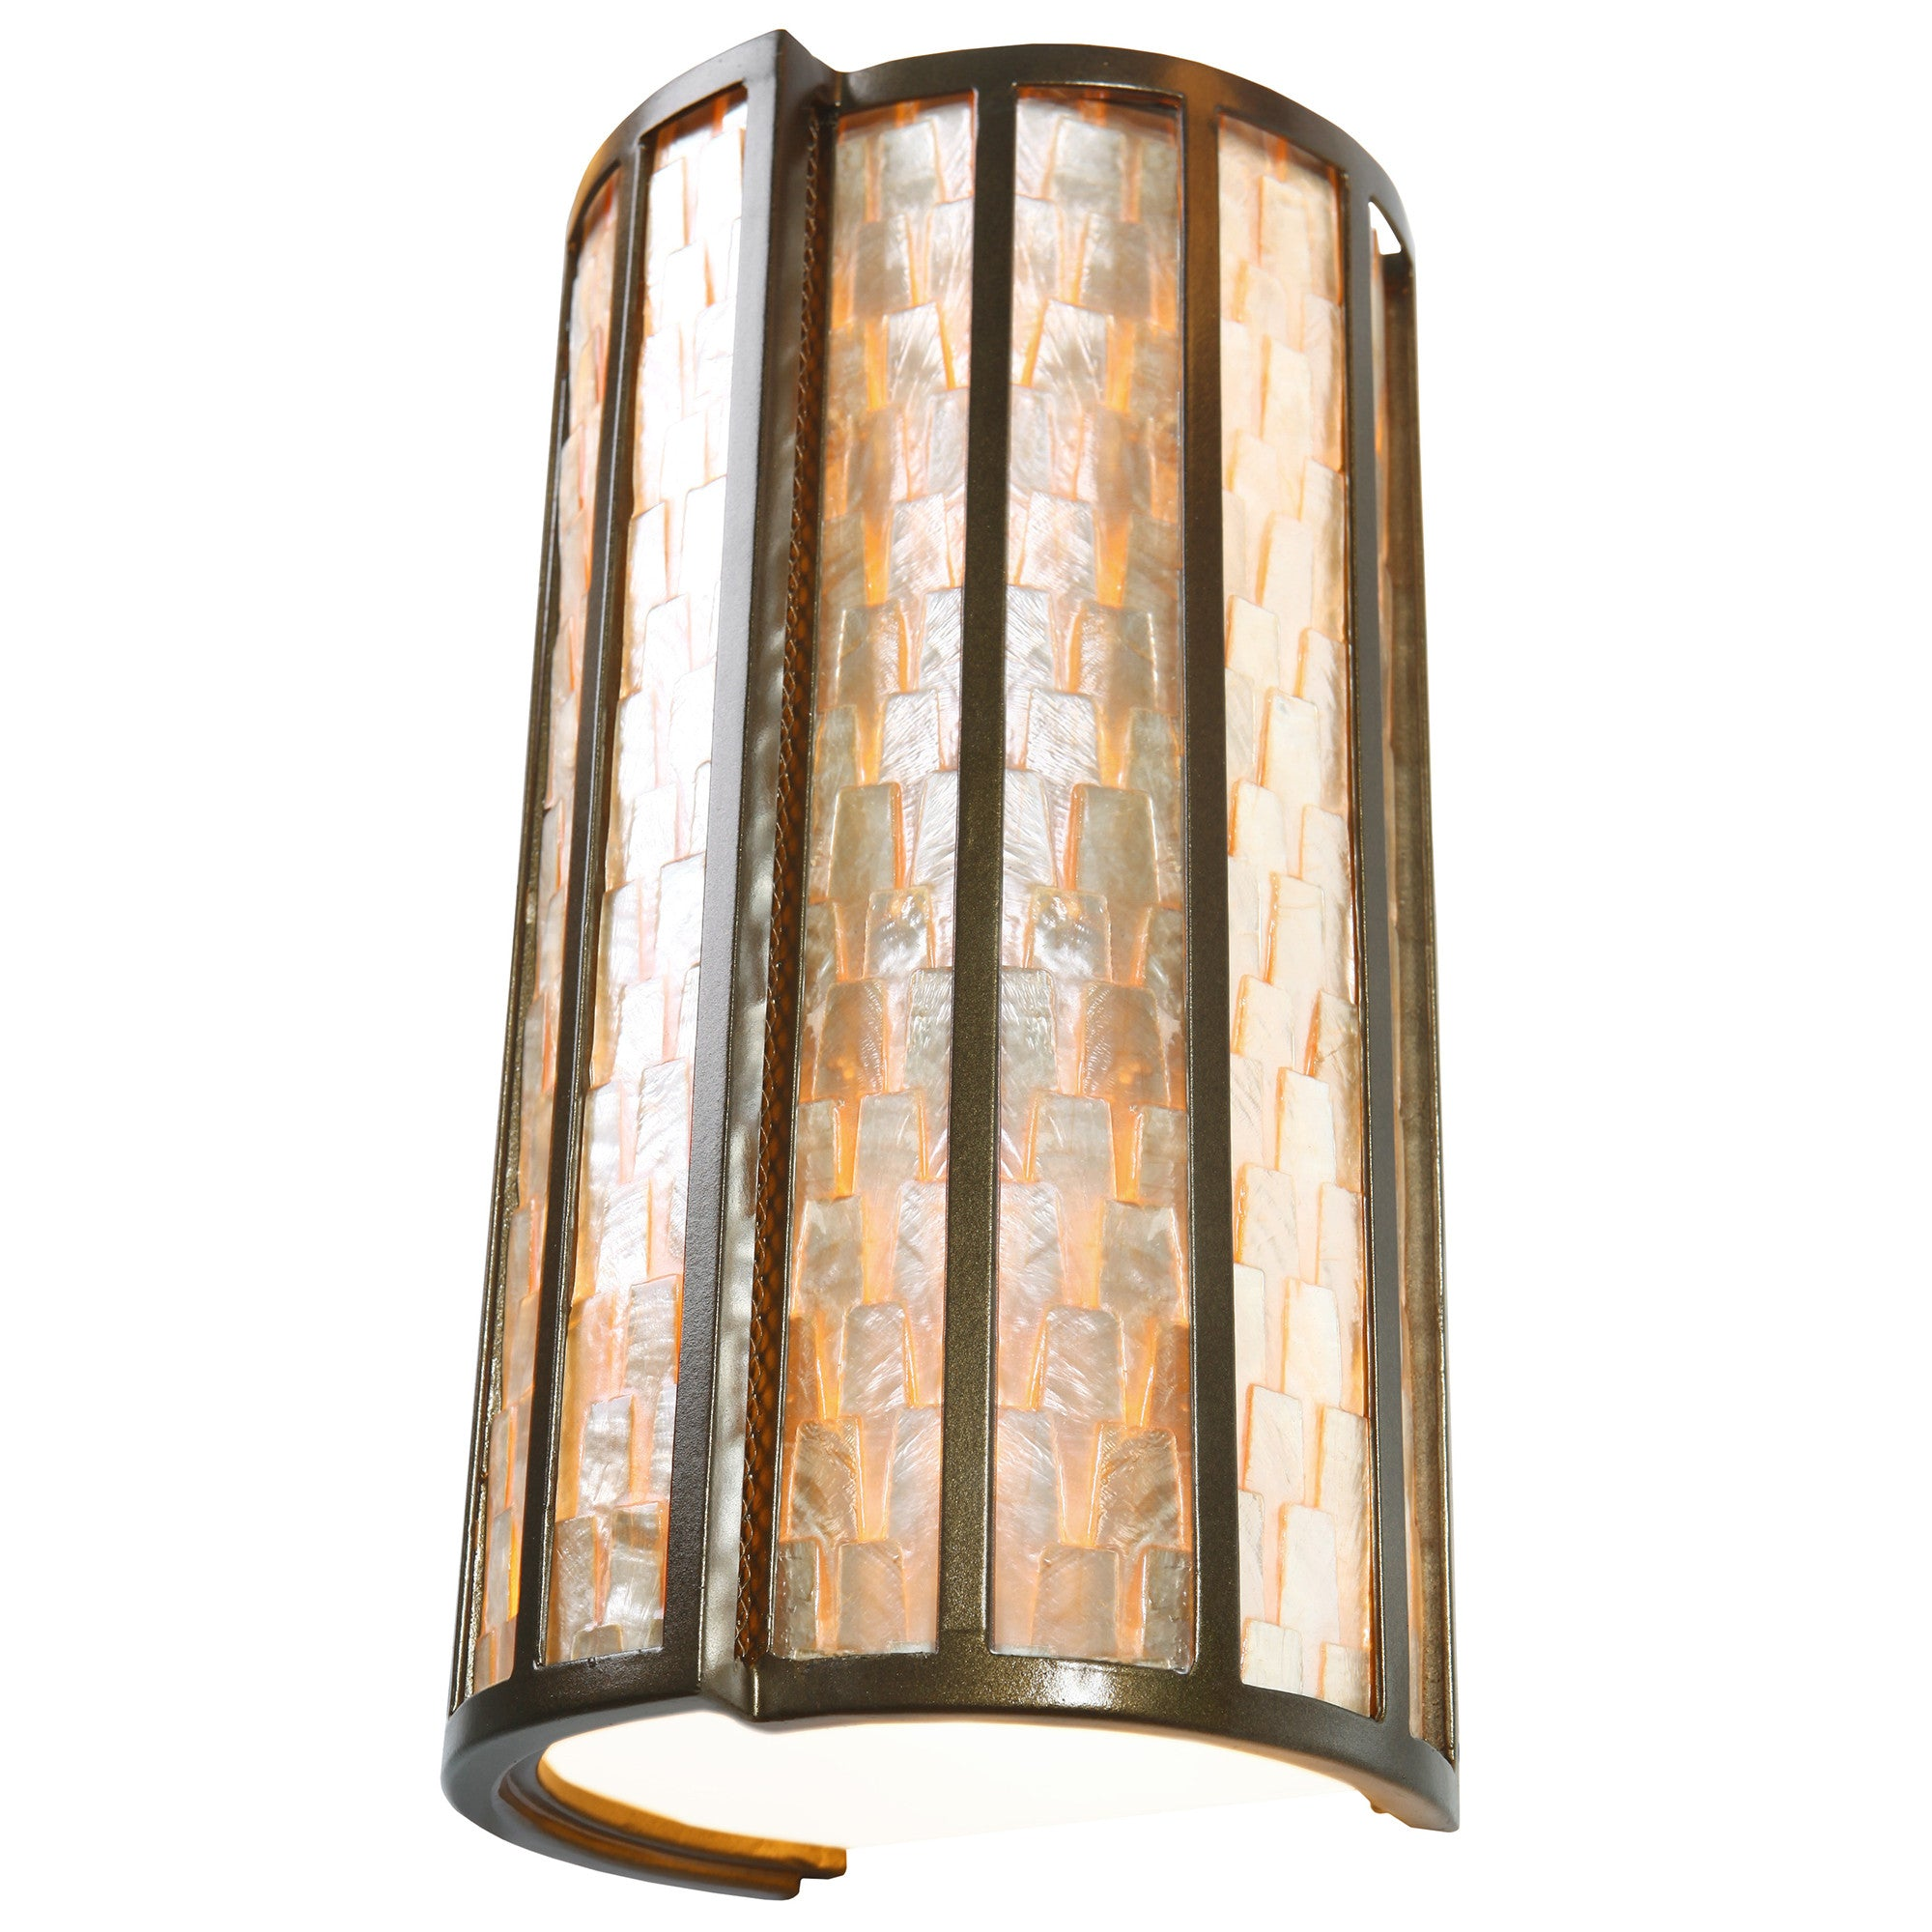 Affinity 175W02 2-Lt Wall Sconce